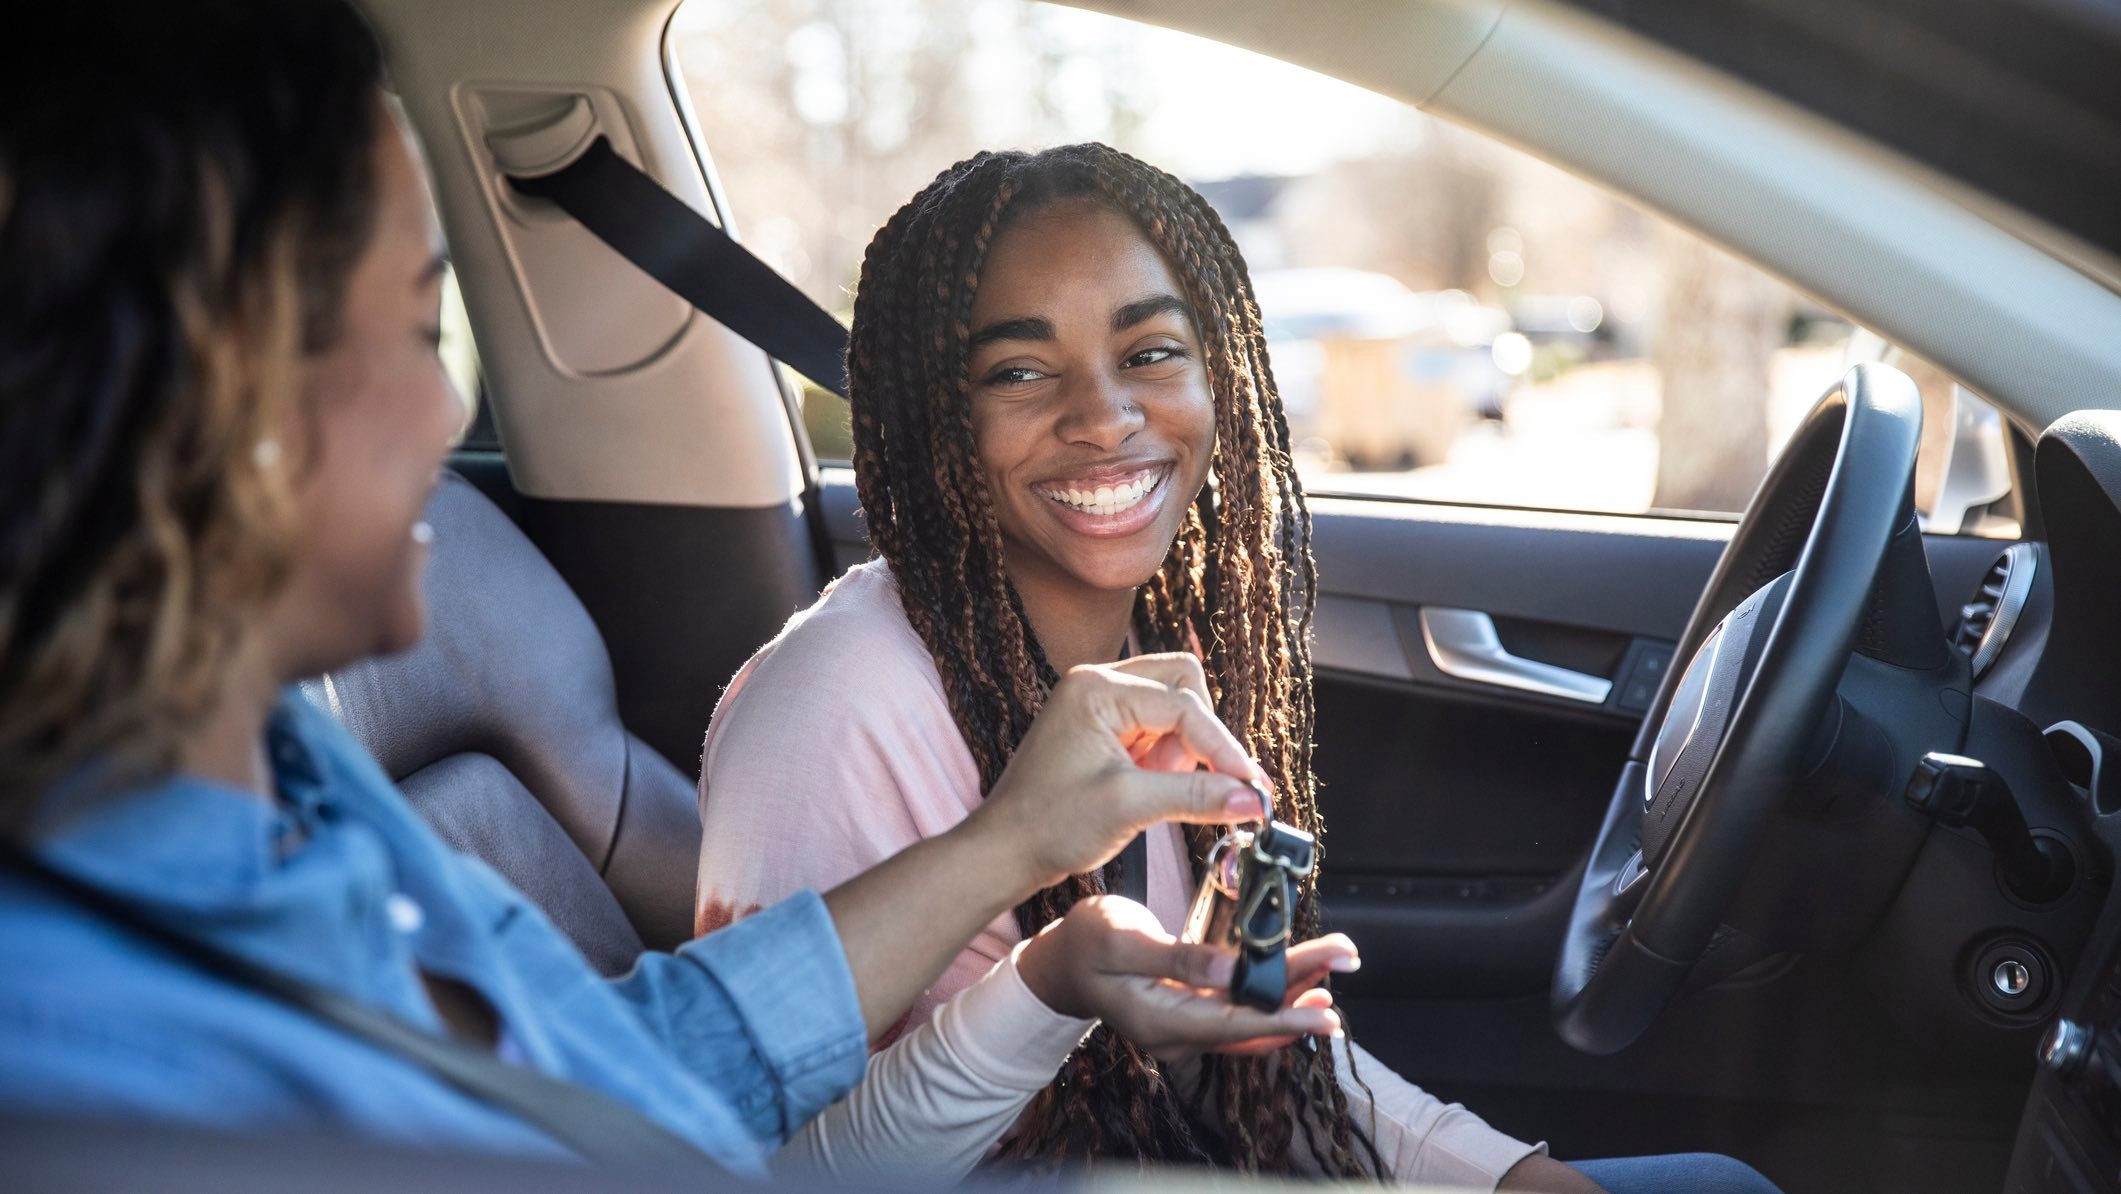 Person handing keys to a smiling young woman sitting in the drivers seat of a secondhand car.